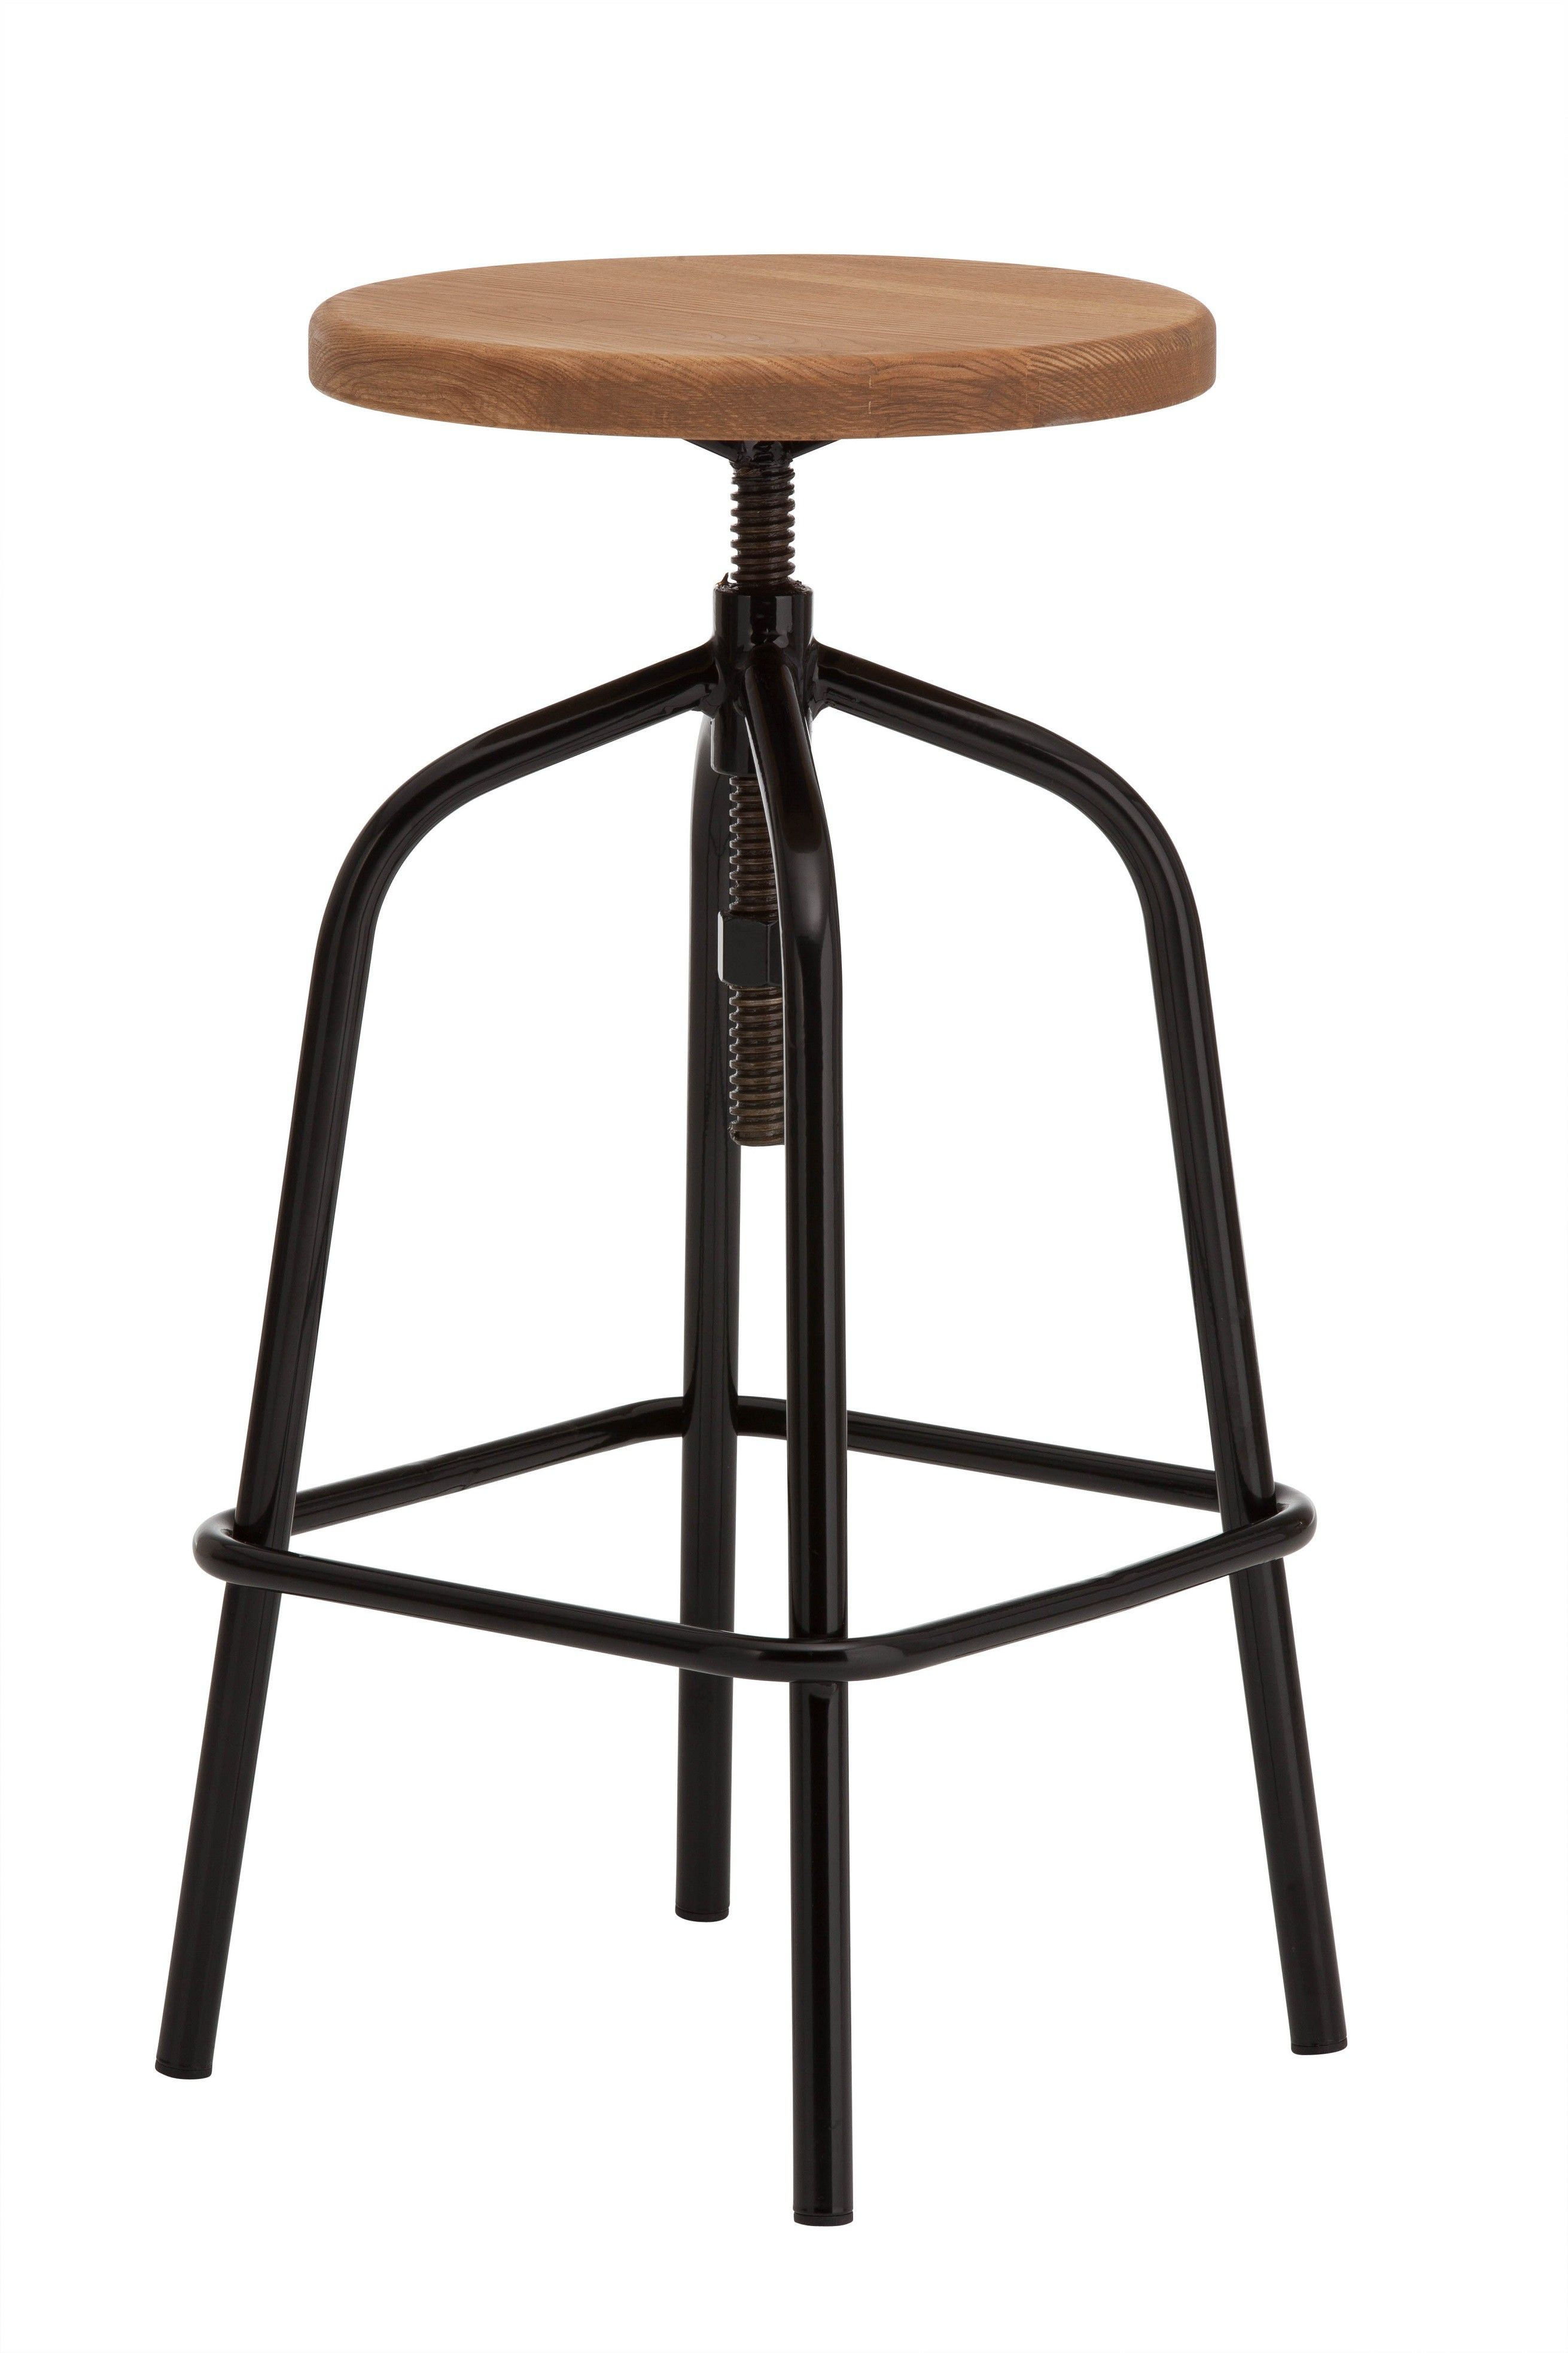 retro turning stool height adjustable this funky retro turning stool is carefully crafted